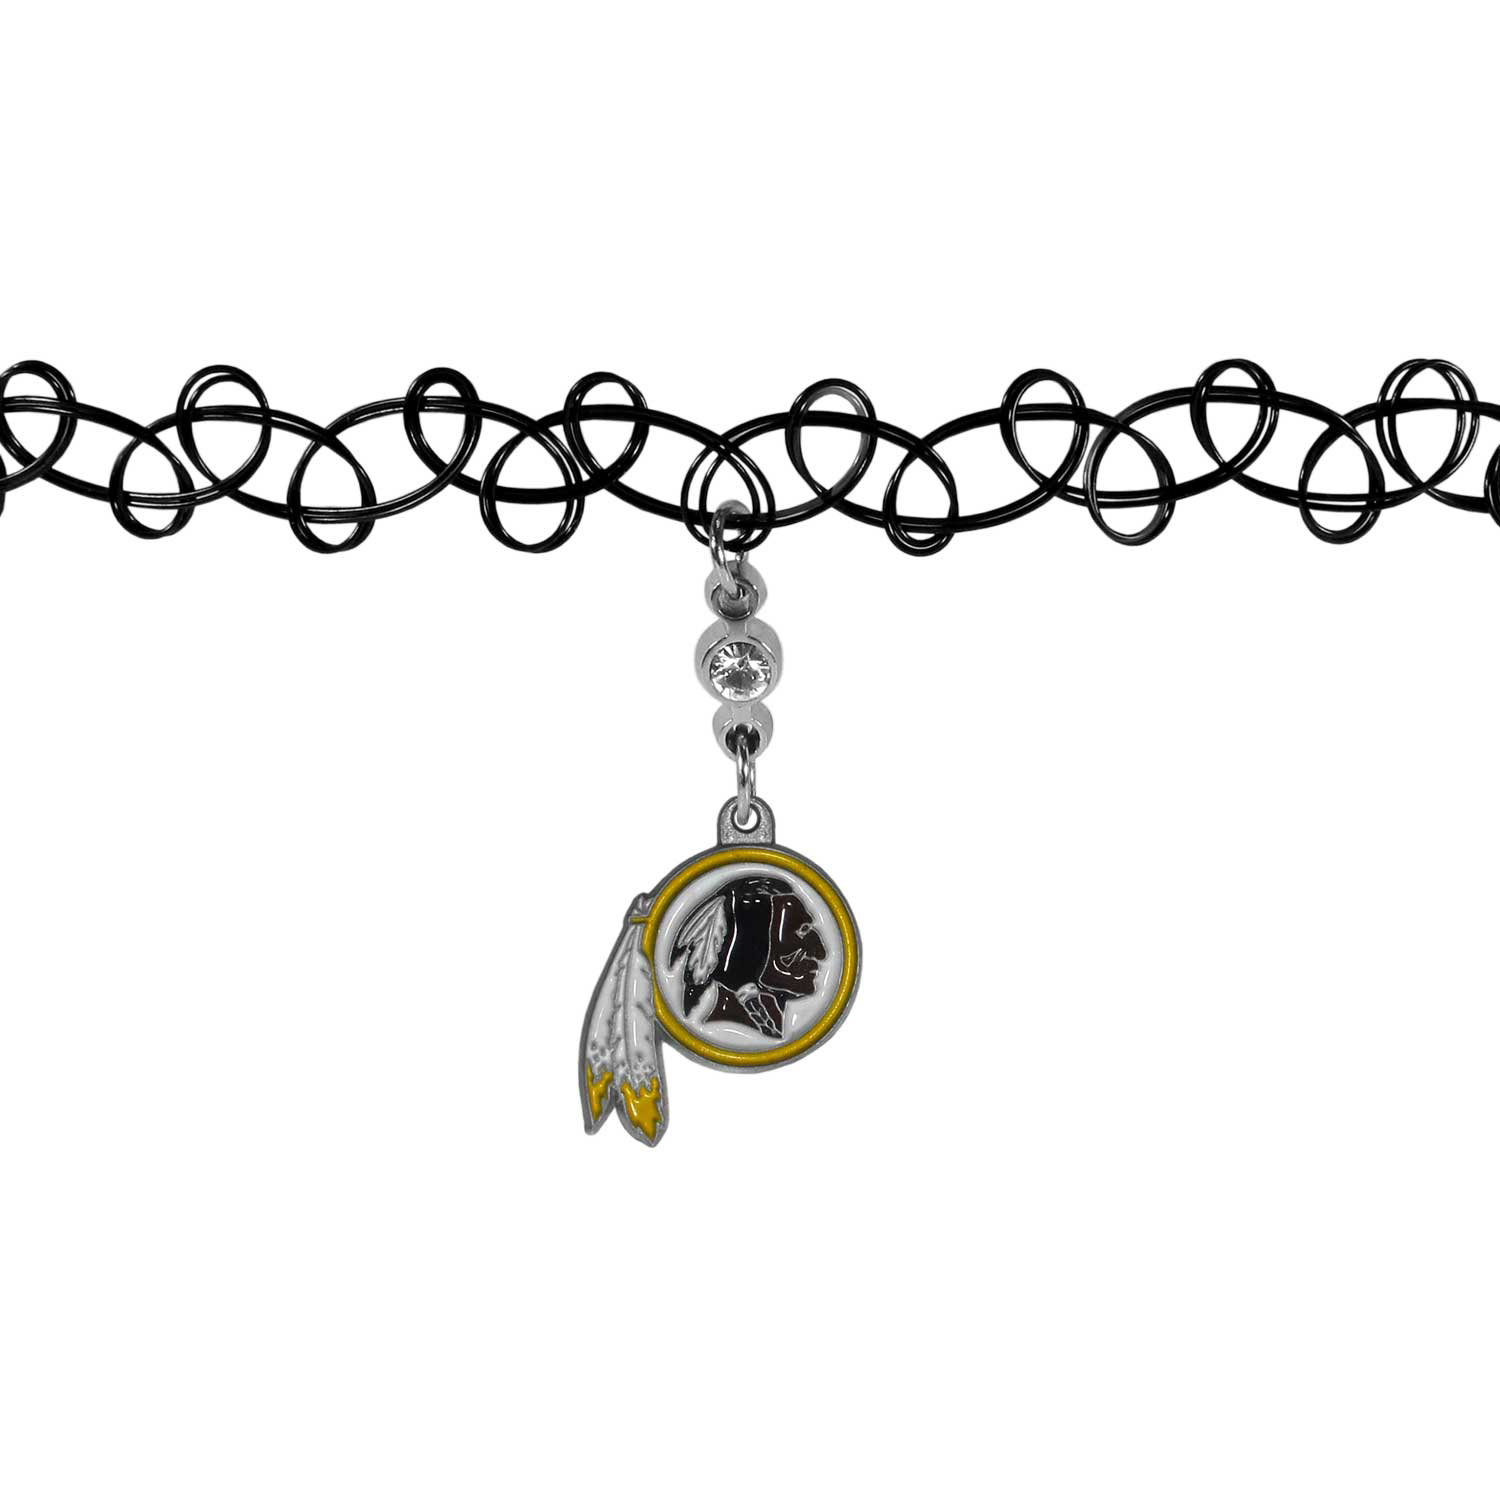 Washington Redskins Knotted Choker - This retro, knotted choker is a cool and unique piece of fan jewelry. The tattoo style choker features a high polish Washington Redskins charm with rhinestone accents.